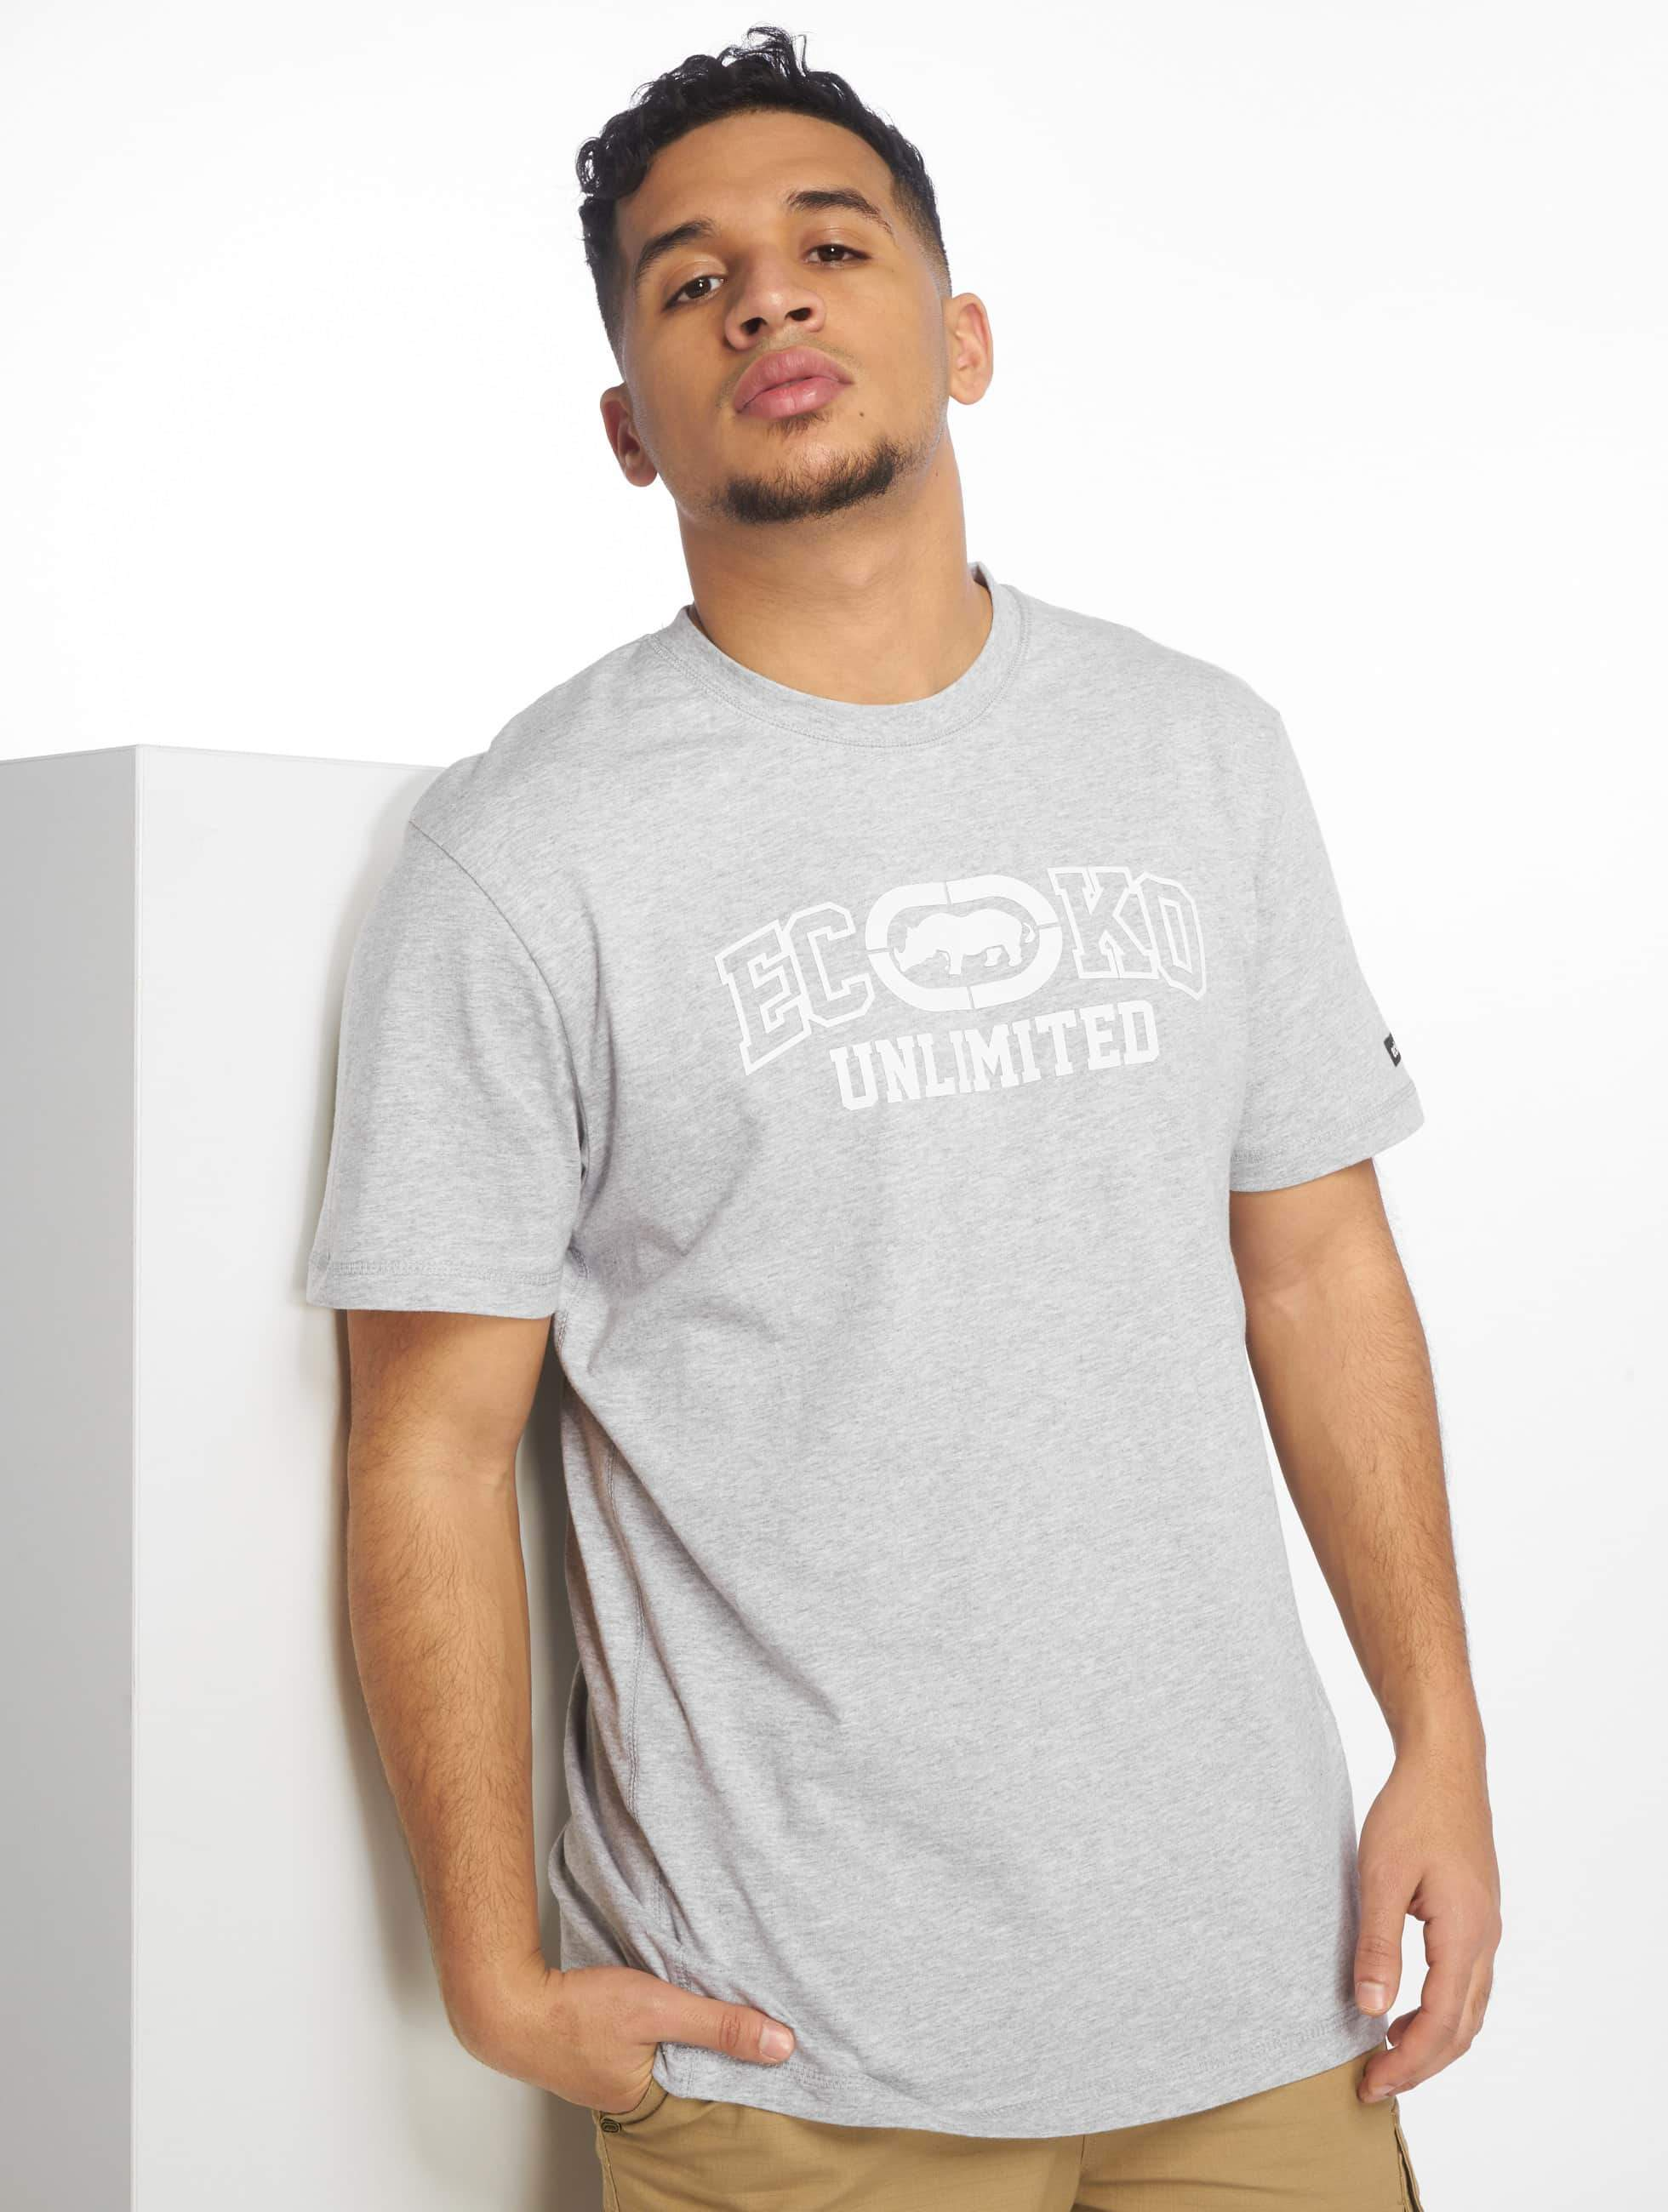 Ecko Unltd. / T-Shirt Oil City in grey XL